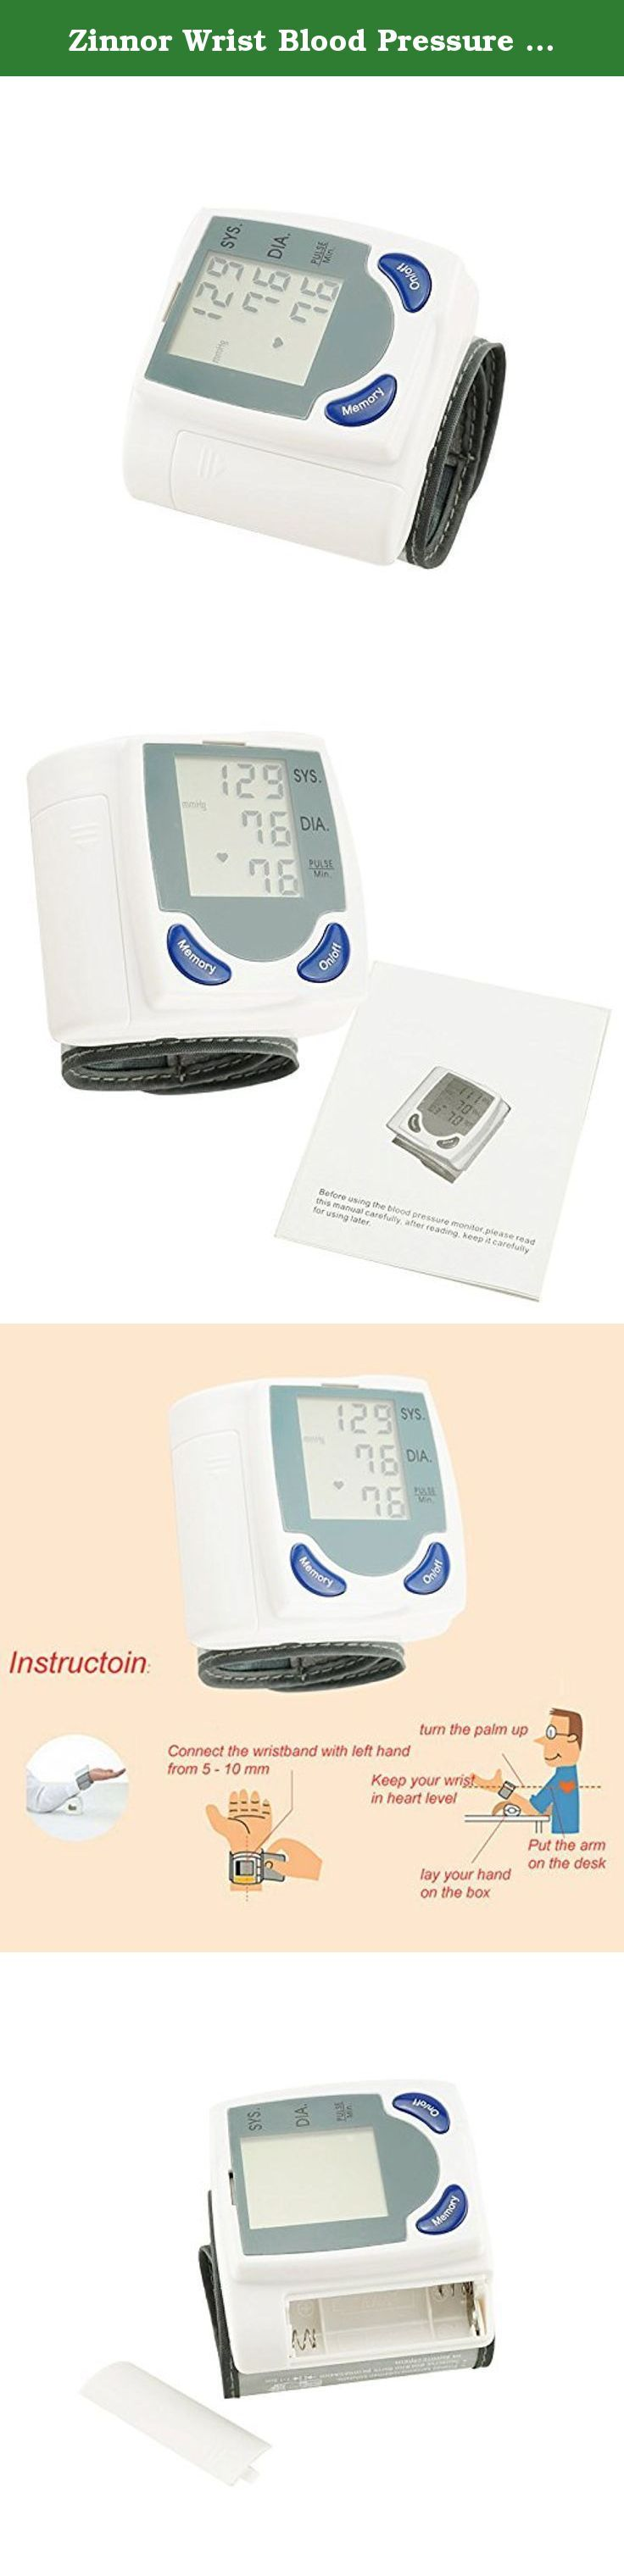 Zinnor Wrist Blood Pressure Digital Monitor Heart Beat Meter 60 Memory and Irregular Heartbeat Detector. Description: Specifications: ► Method: oscillographic determination method. ► Blood pressure: 0 ~ 280 mm (0 ~ 37.3 kPa) ► The pulse: 40 ~ 200 / Po. ► Pressure: the pressure pump pressure mode automatically. ► Pressure test: resistive pressure sensor. ► Power supply: 2 x 1.5V AAA batteries (not included) ► Automatic shutdown: 60 seconds. Package Include: 1 X Automatic Blood Pressure…